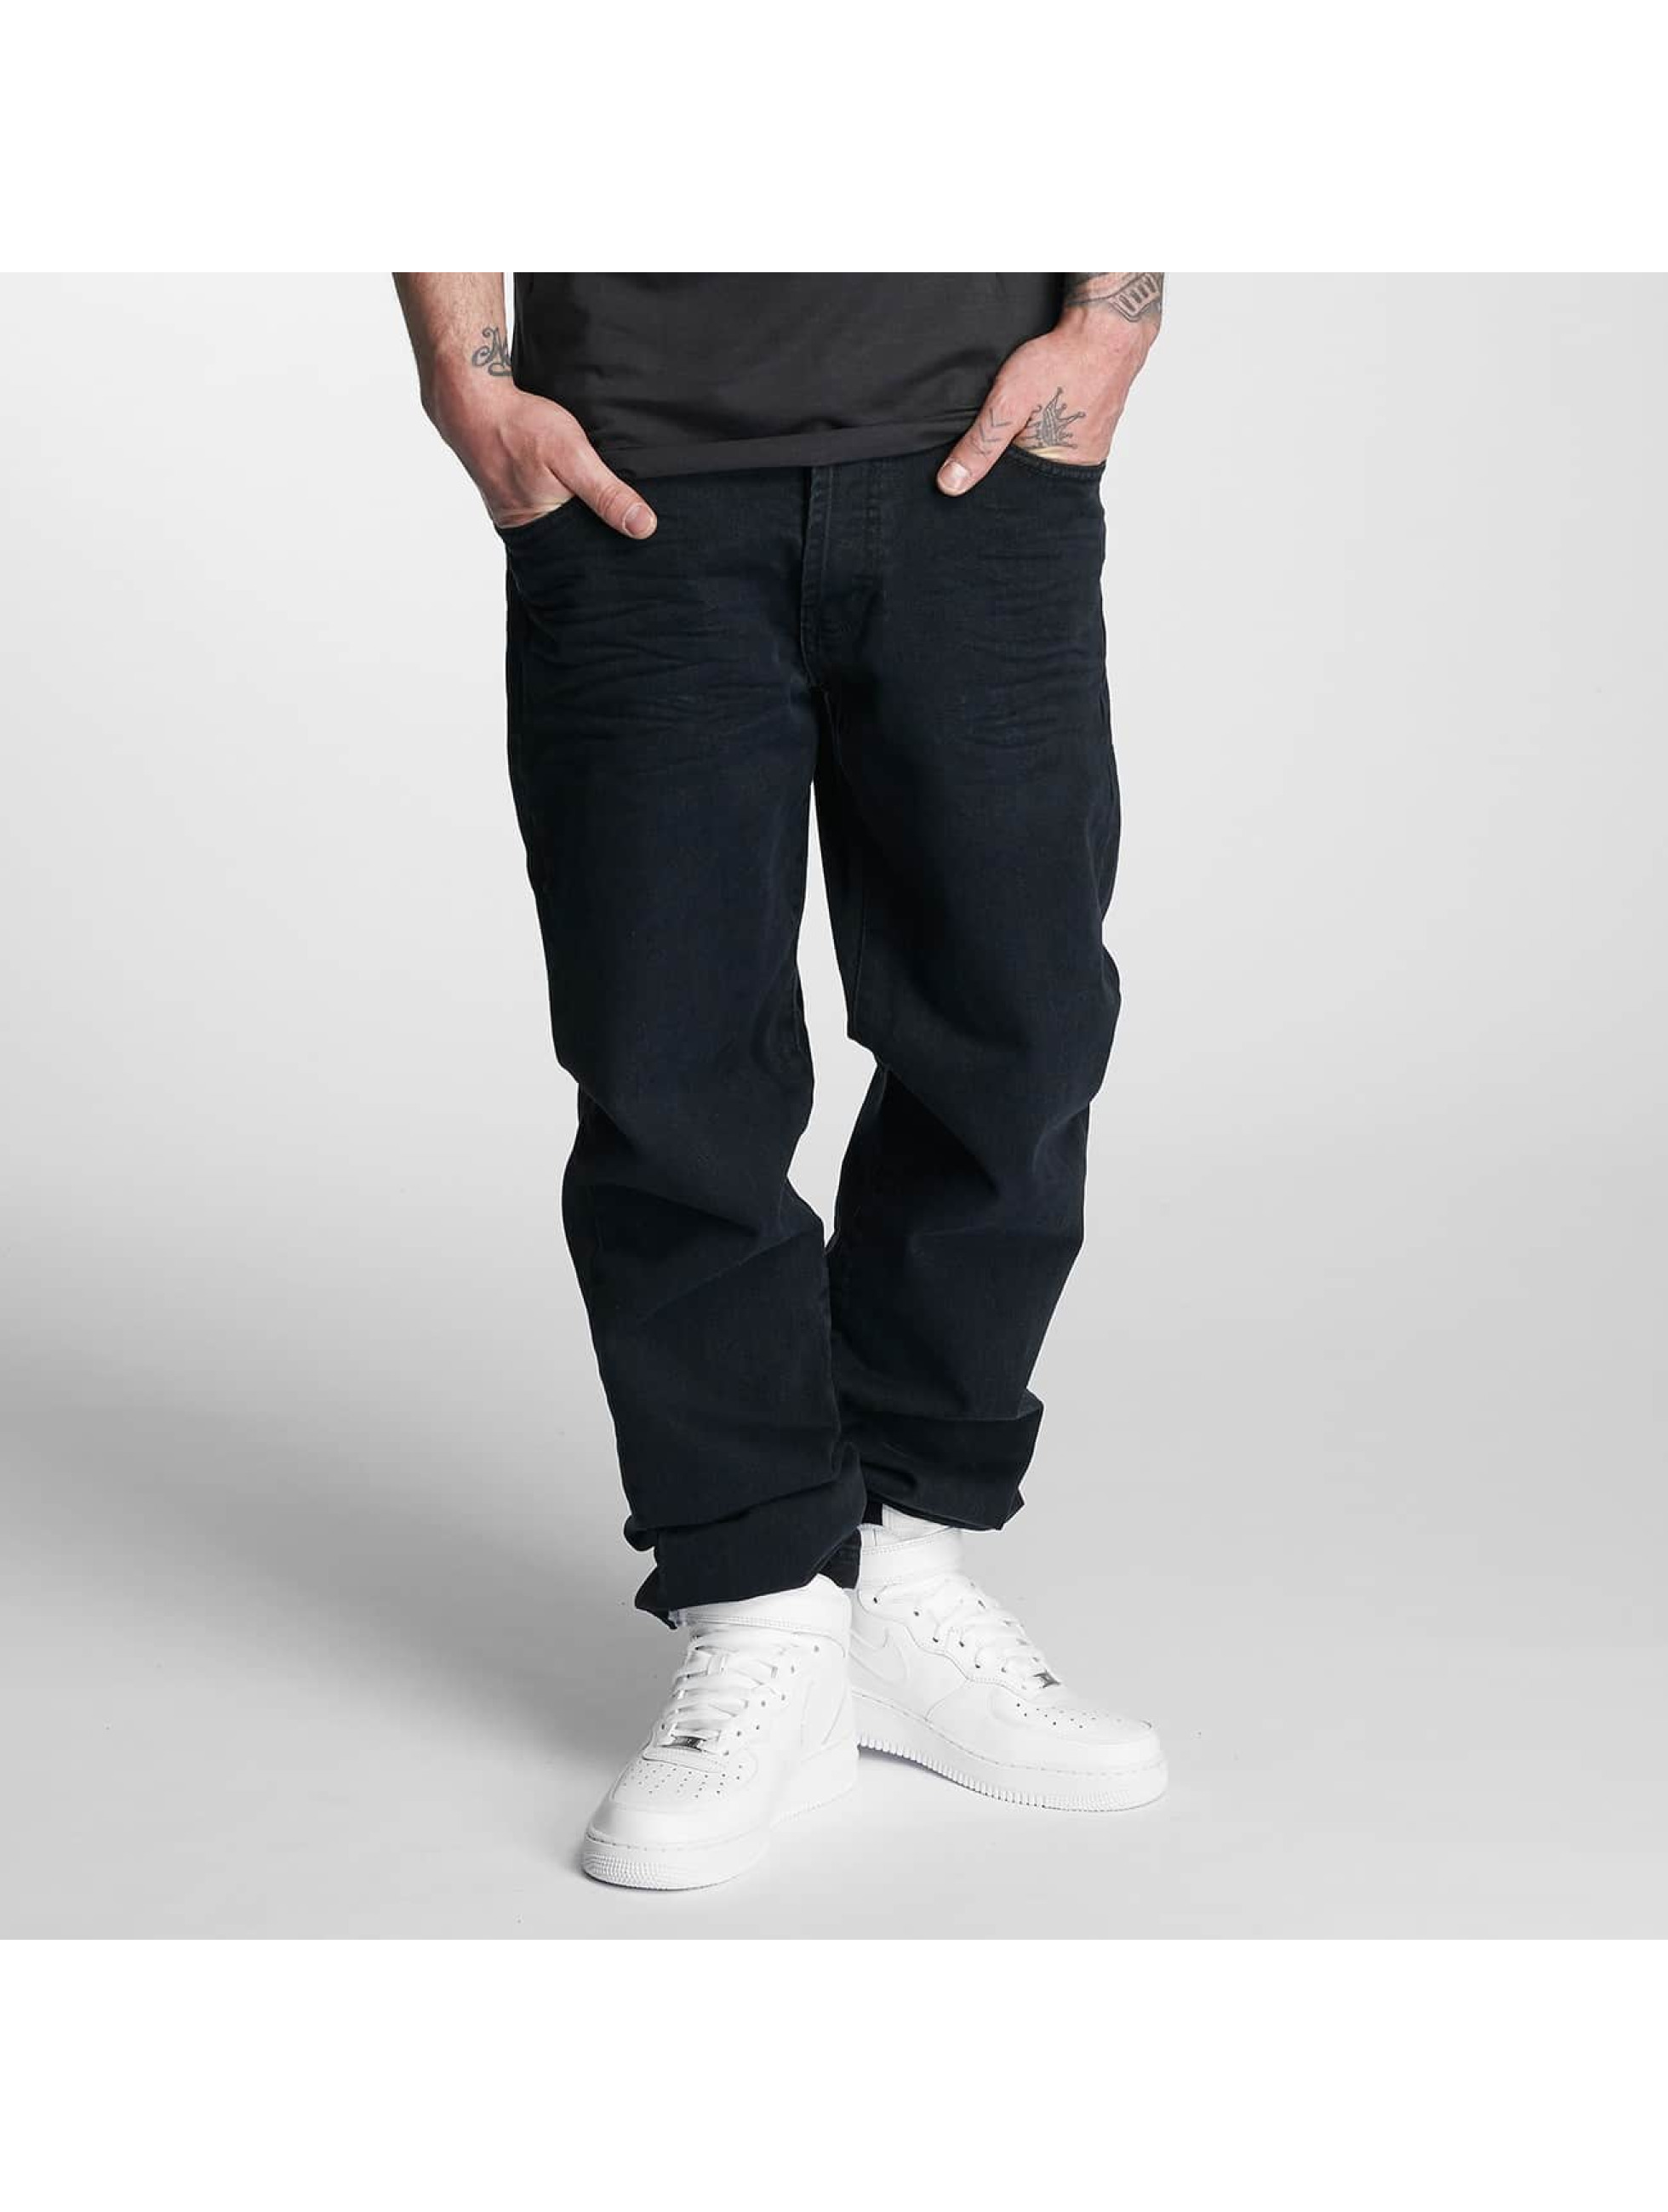 Thug Life / Loose Fit Jeans Carrot in black W 36 L 34